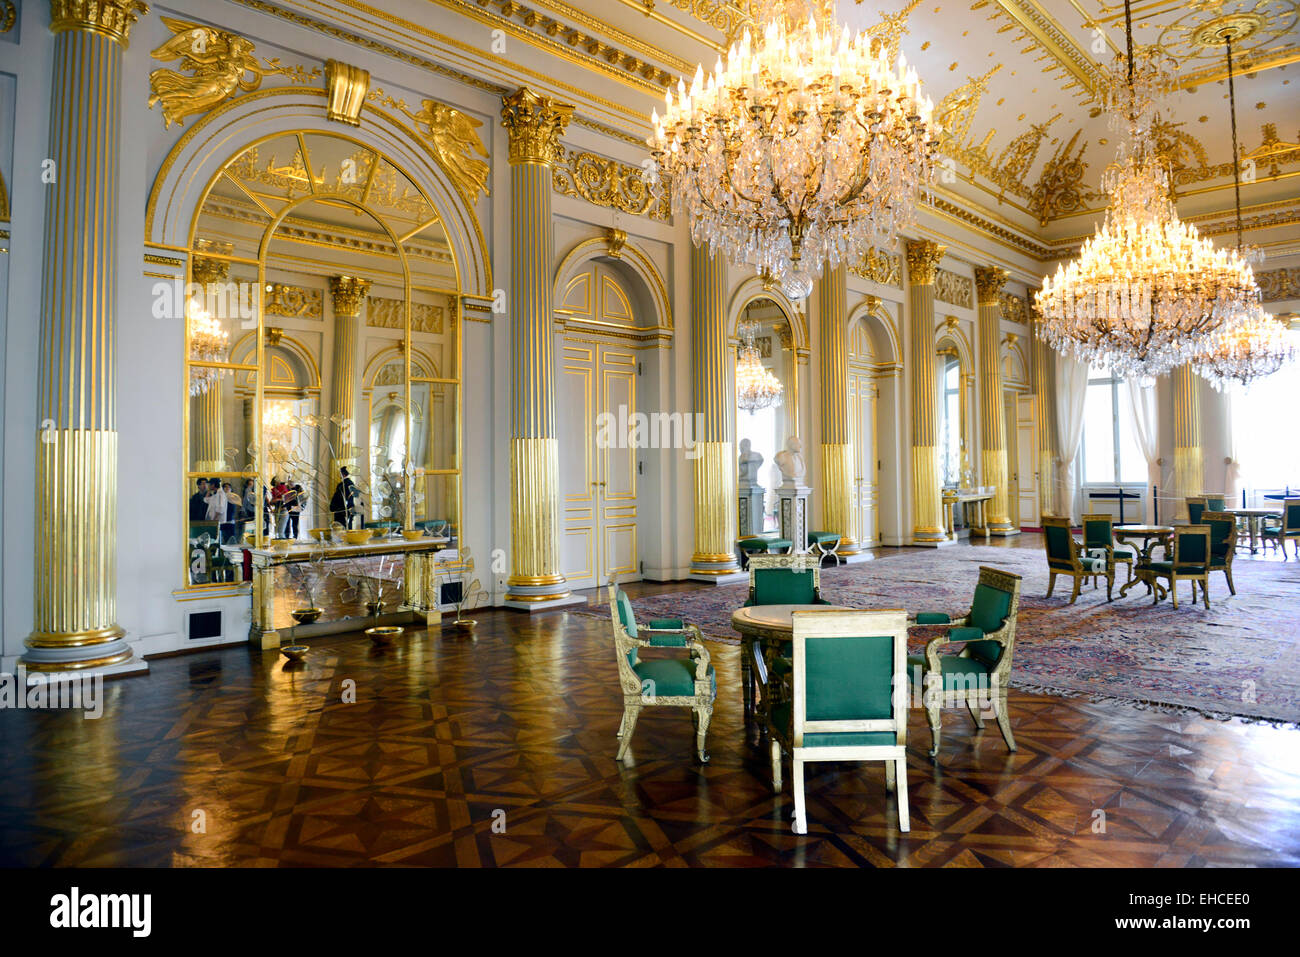 The Beautiful Interior Halls And Rooms Of The Royal Palace In Brussels.    Stock Image